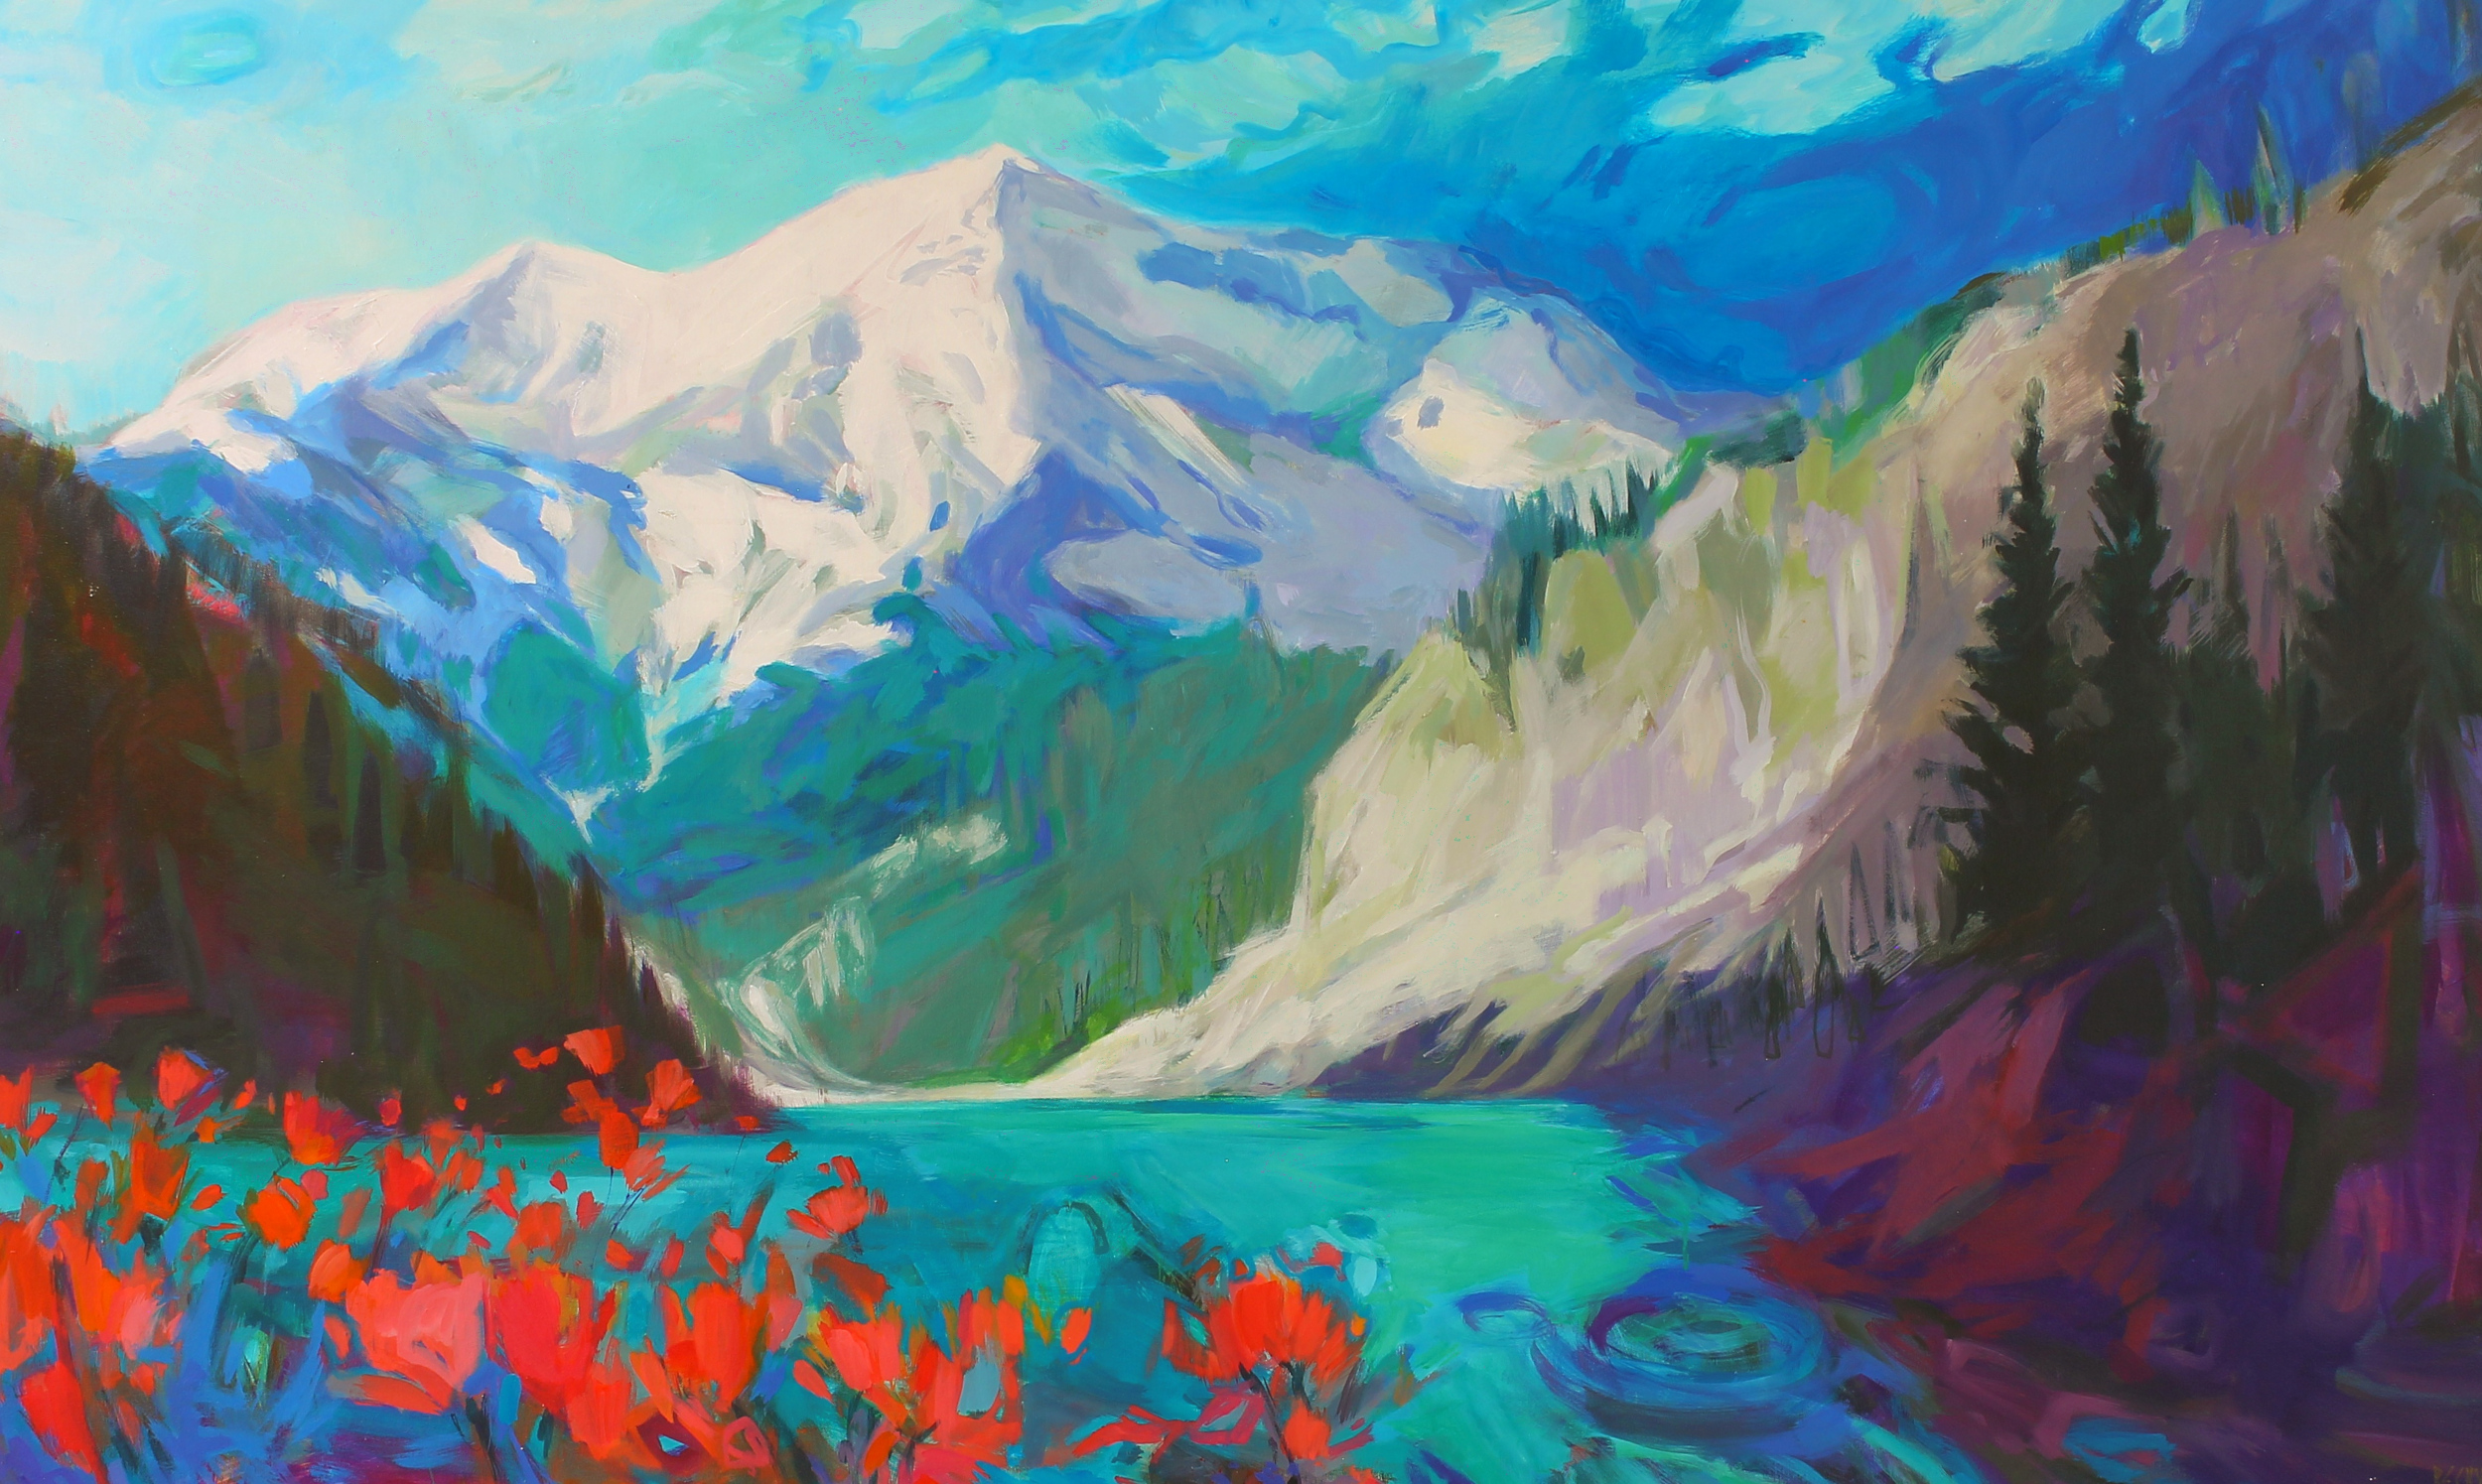 Wild Blue Yonder, acrylic landscape painting by Becky Holuk | Effusion Art Gallery + Cast Glass Studio, Invermere BC